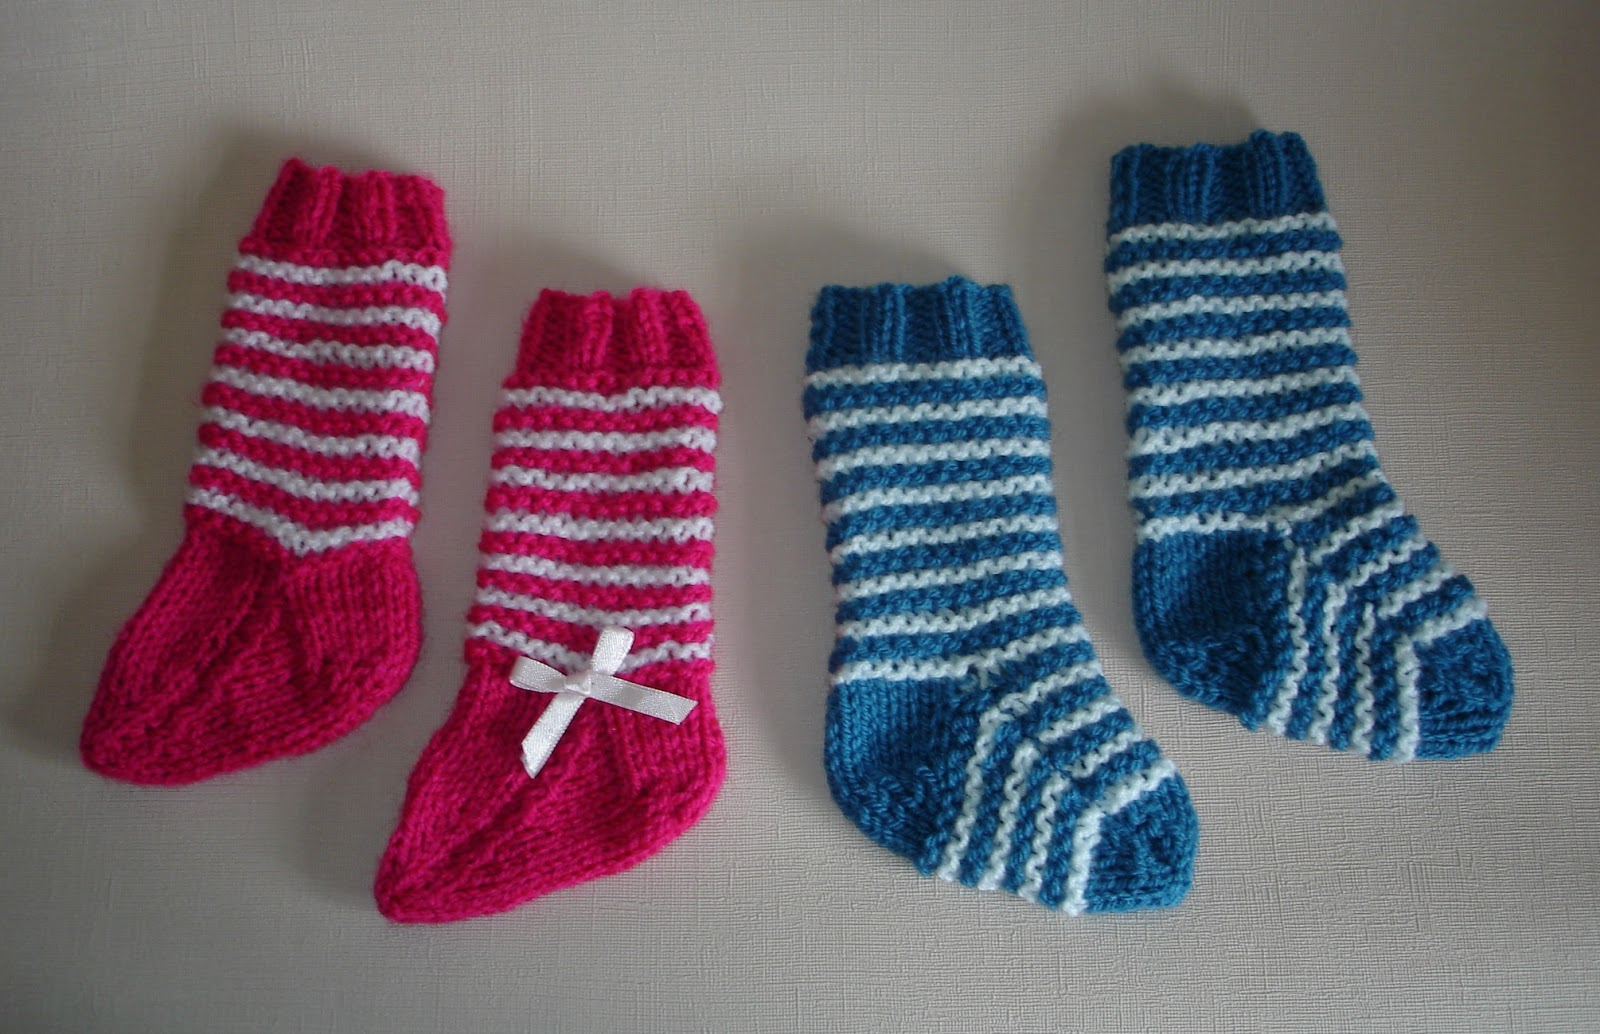 Knitting Patterns For Men s Socks On 4 Needles : mariannas lazy daisy days: 2-needle baby socks